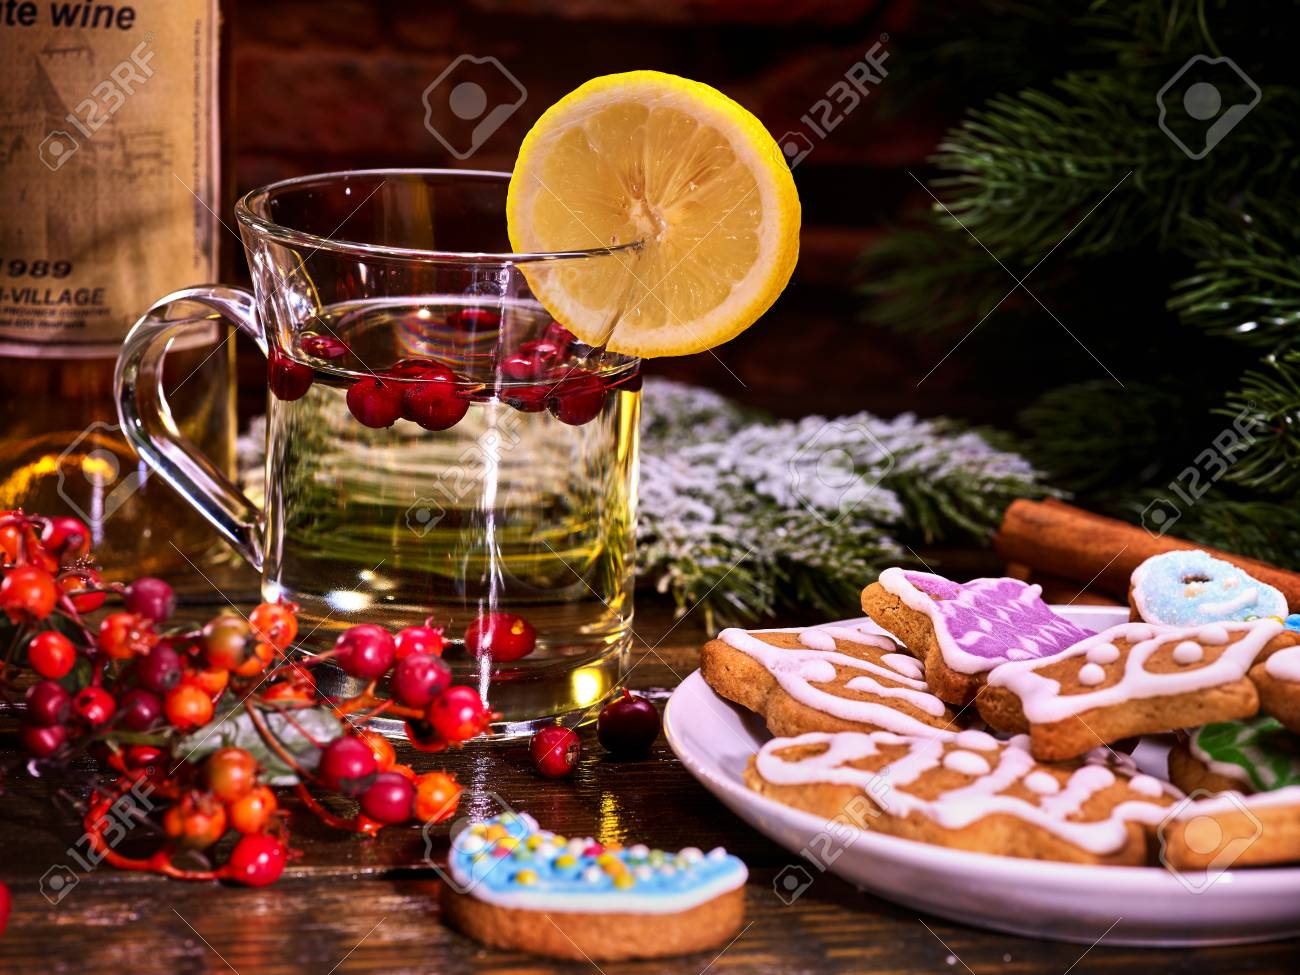 Christmas Still Life With Bottle Wine Christmas Cookies And